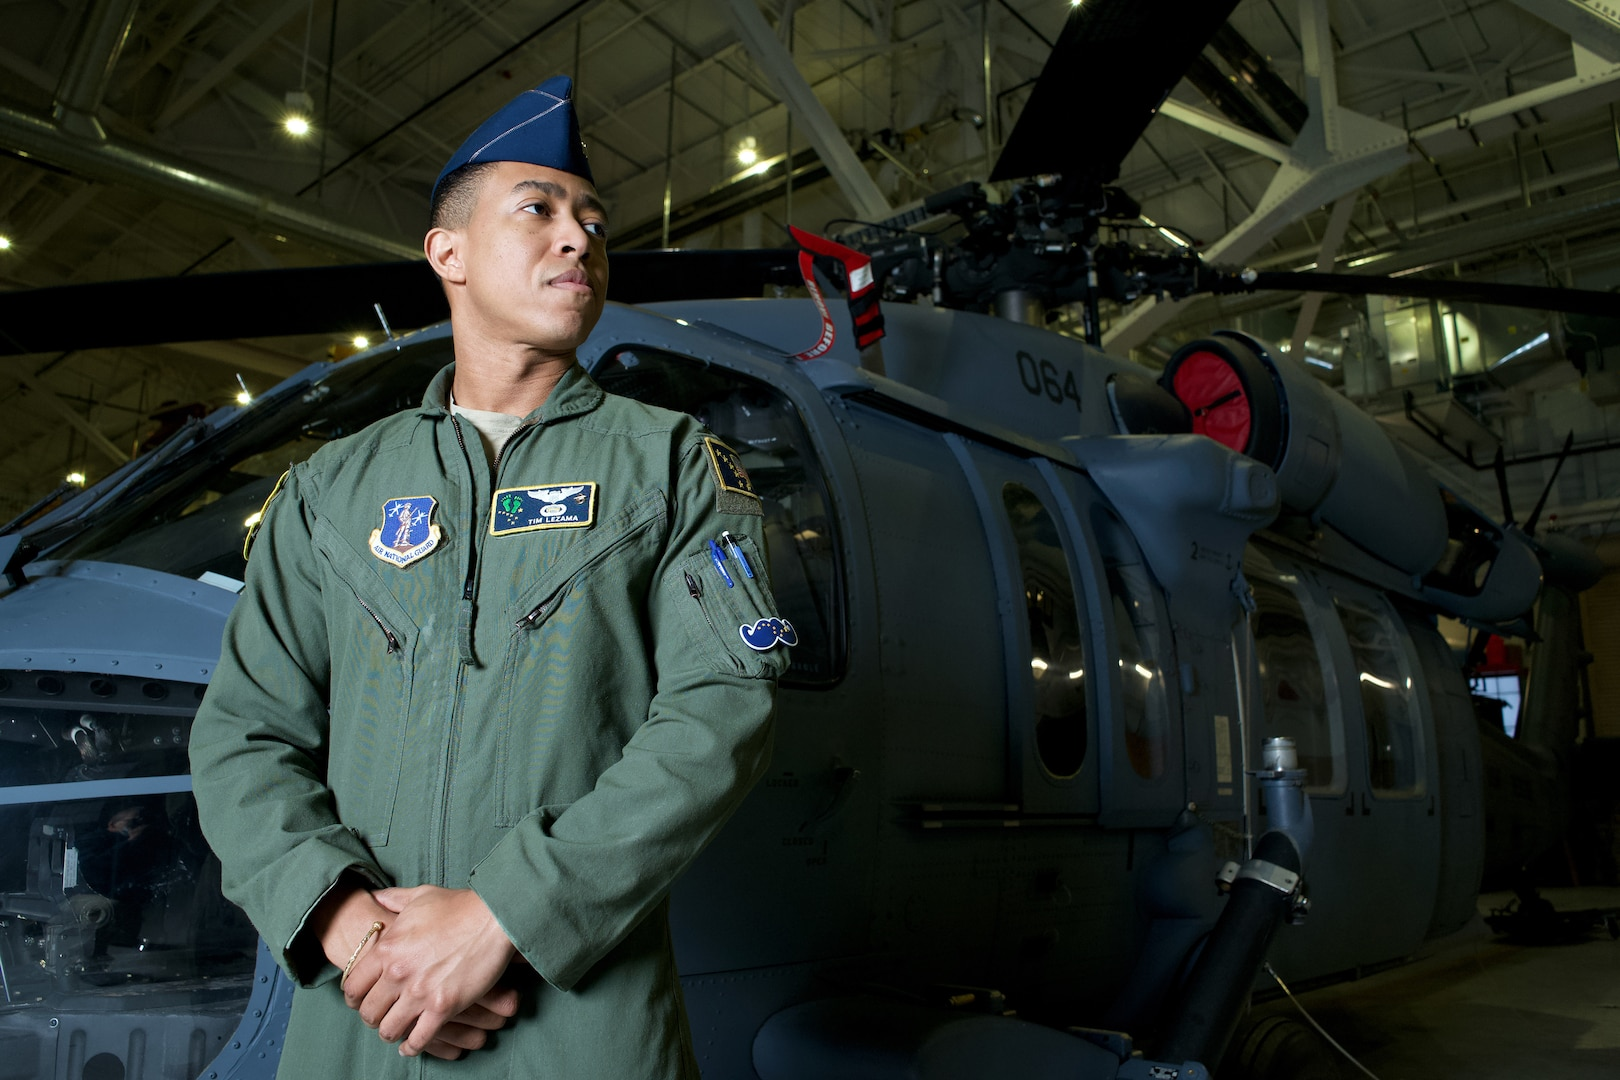 Alaska Air National Guard Capt. Timothy Lezama is an HH-60G Pave Hawk helicopter pilot with 210th Rescue Squadron. Lezama is a native of Parkland, Fla., and his parents emigrated from Trinidad and Tobago.